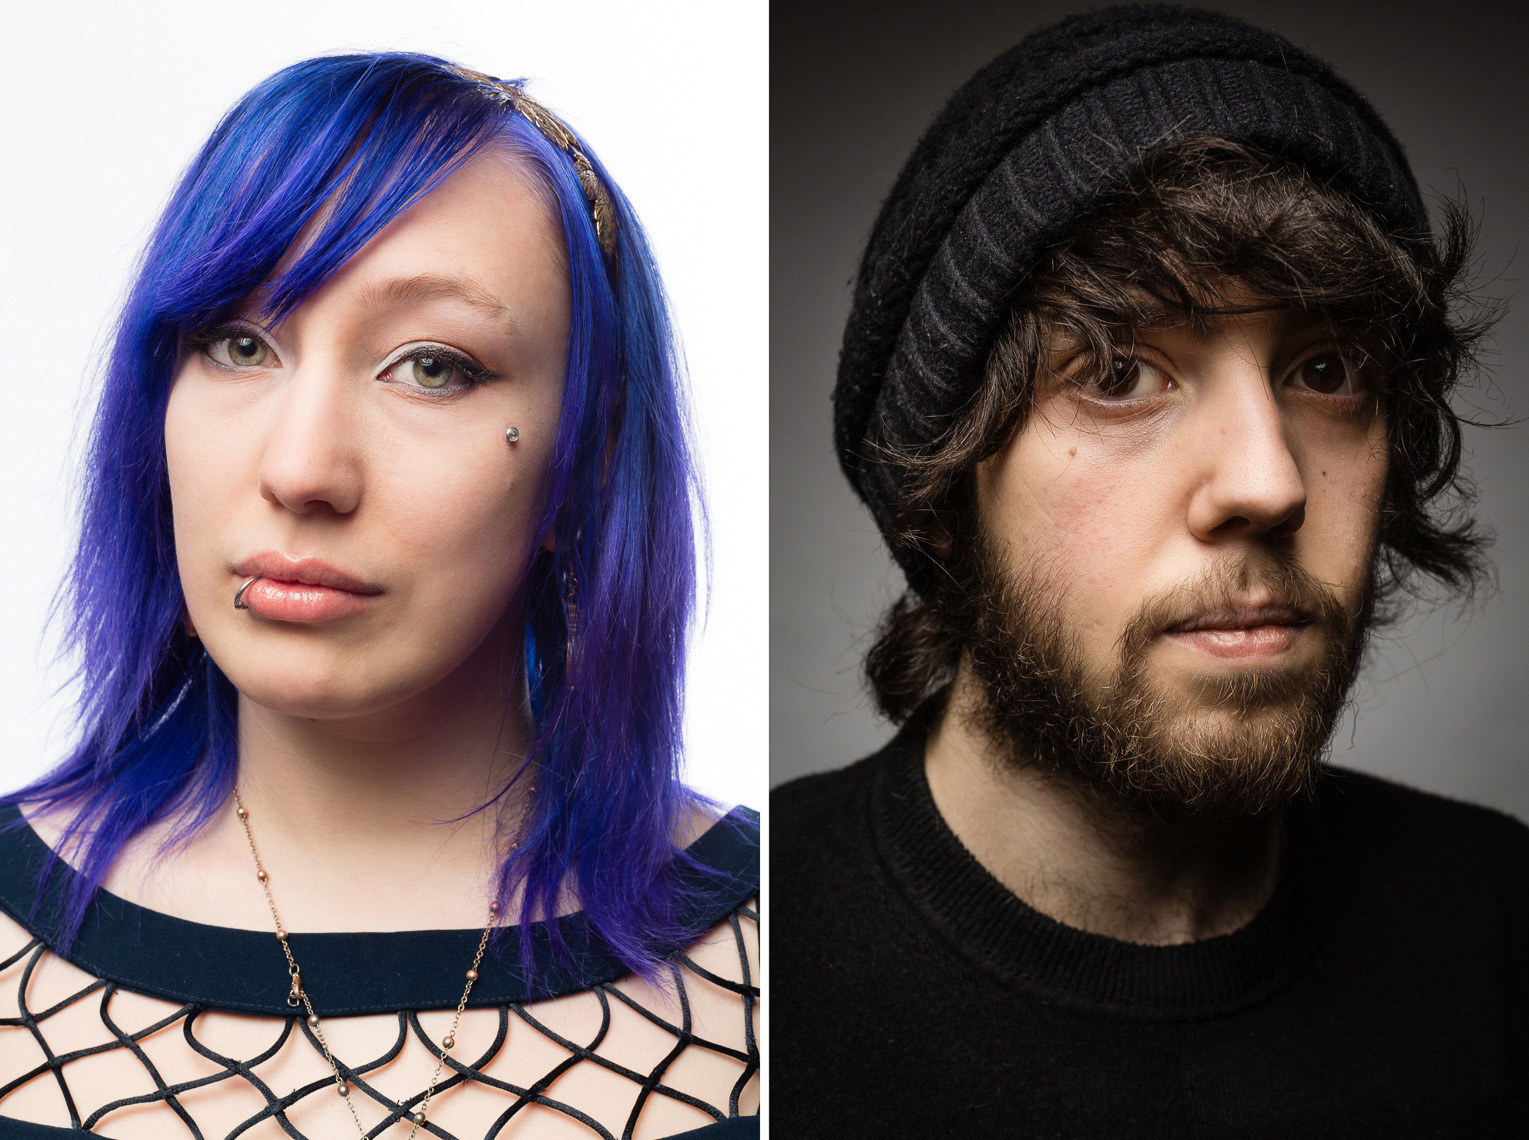 ZOE QUINN & ERON GJONI • GAMERGATE • Jason Grow Photography